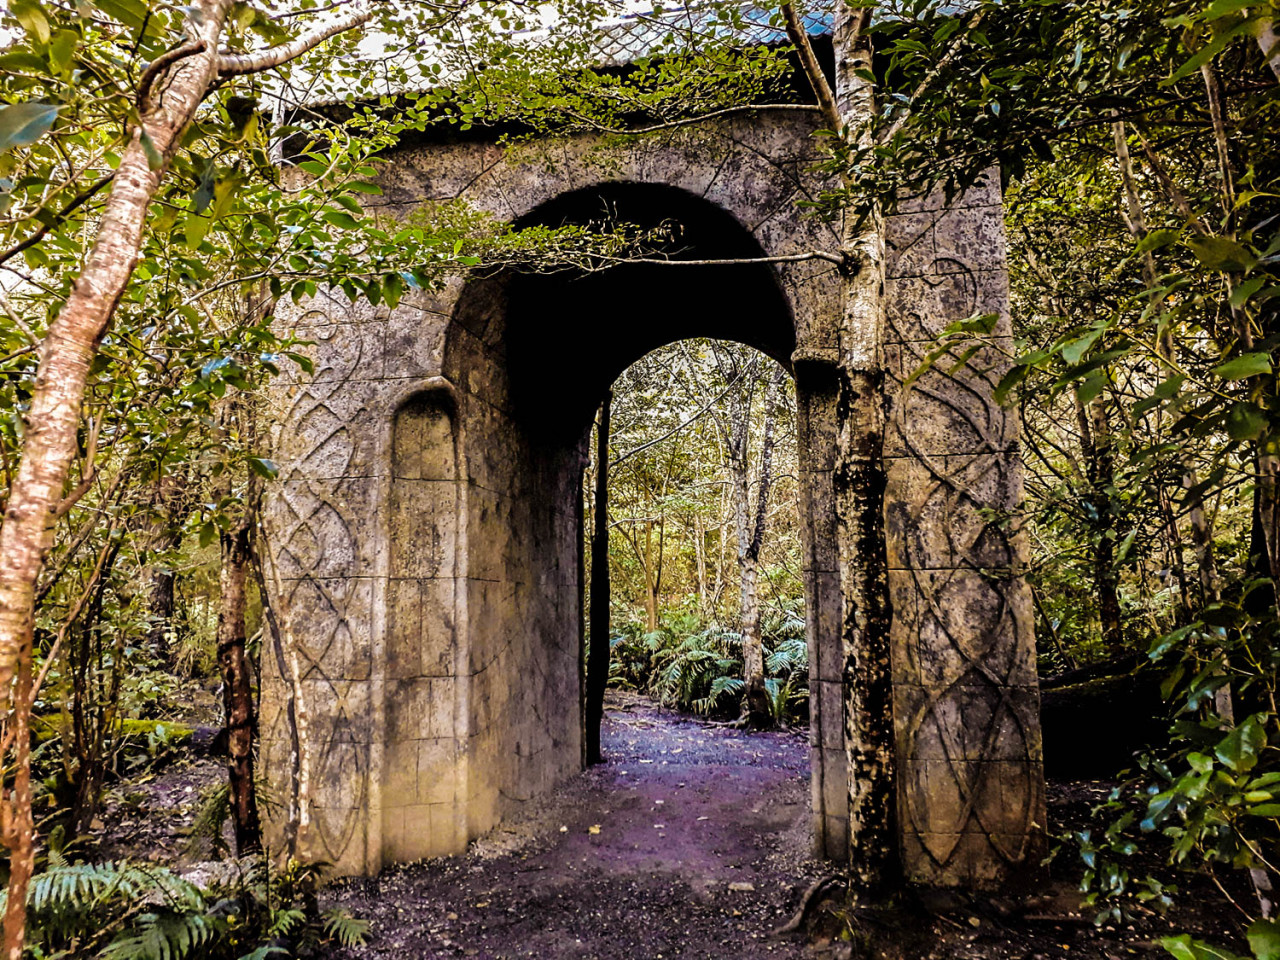 The gate to Rivendell is a replica, but it still gives this location a magical Middle Earth atmosphere.